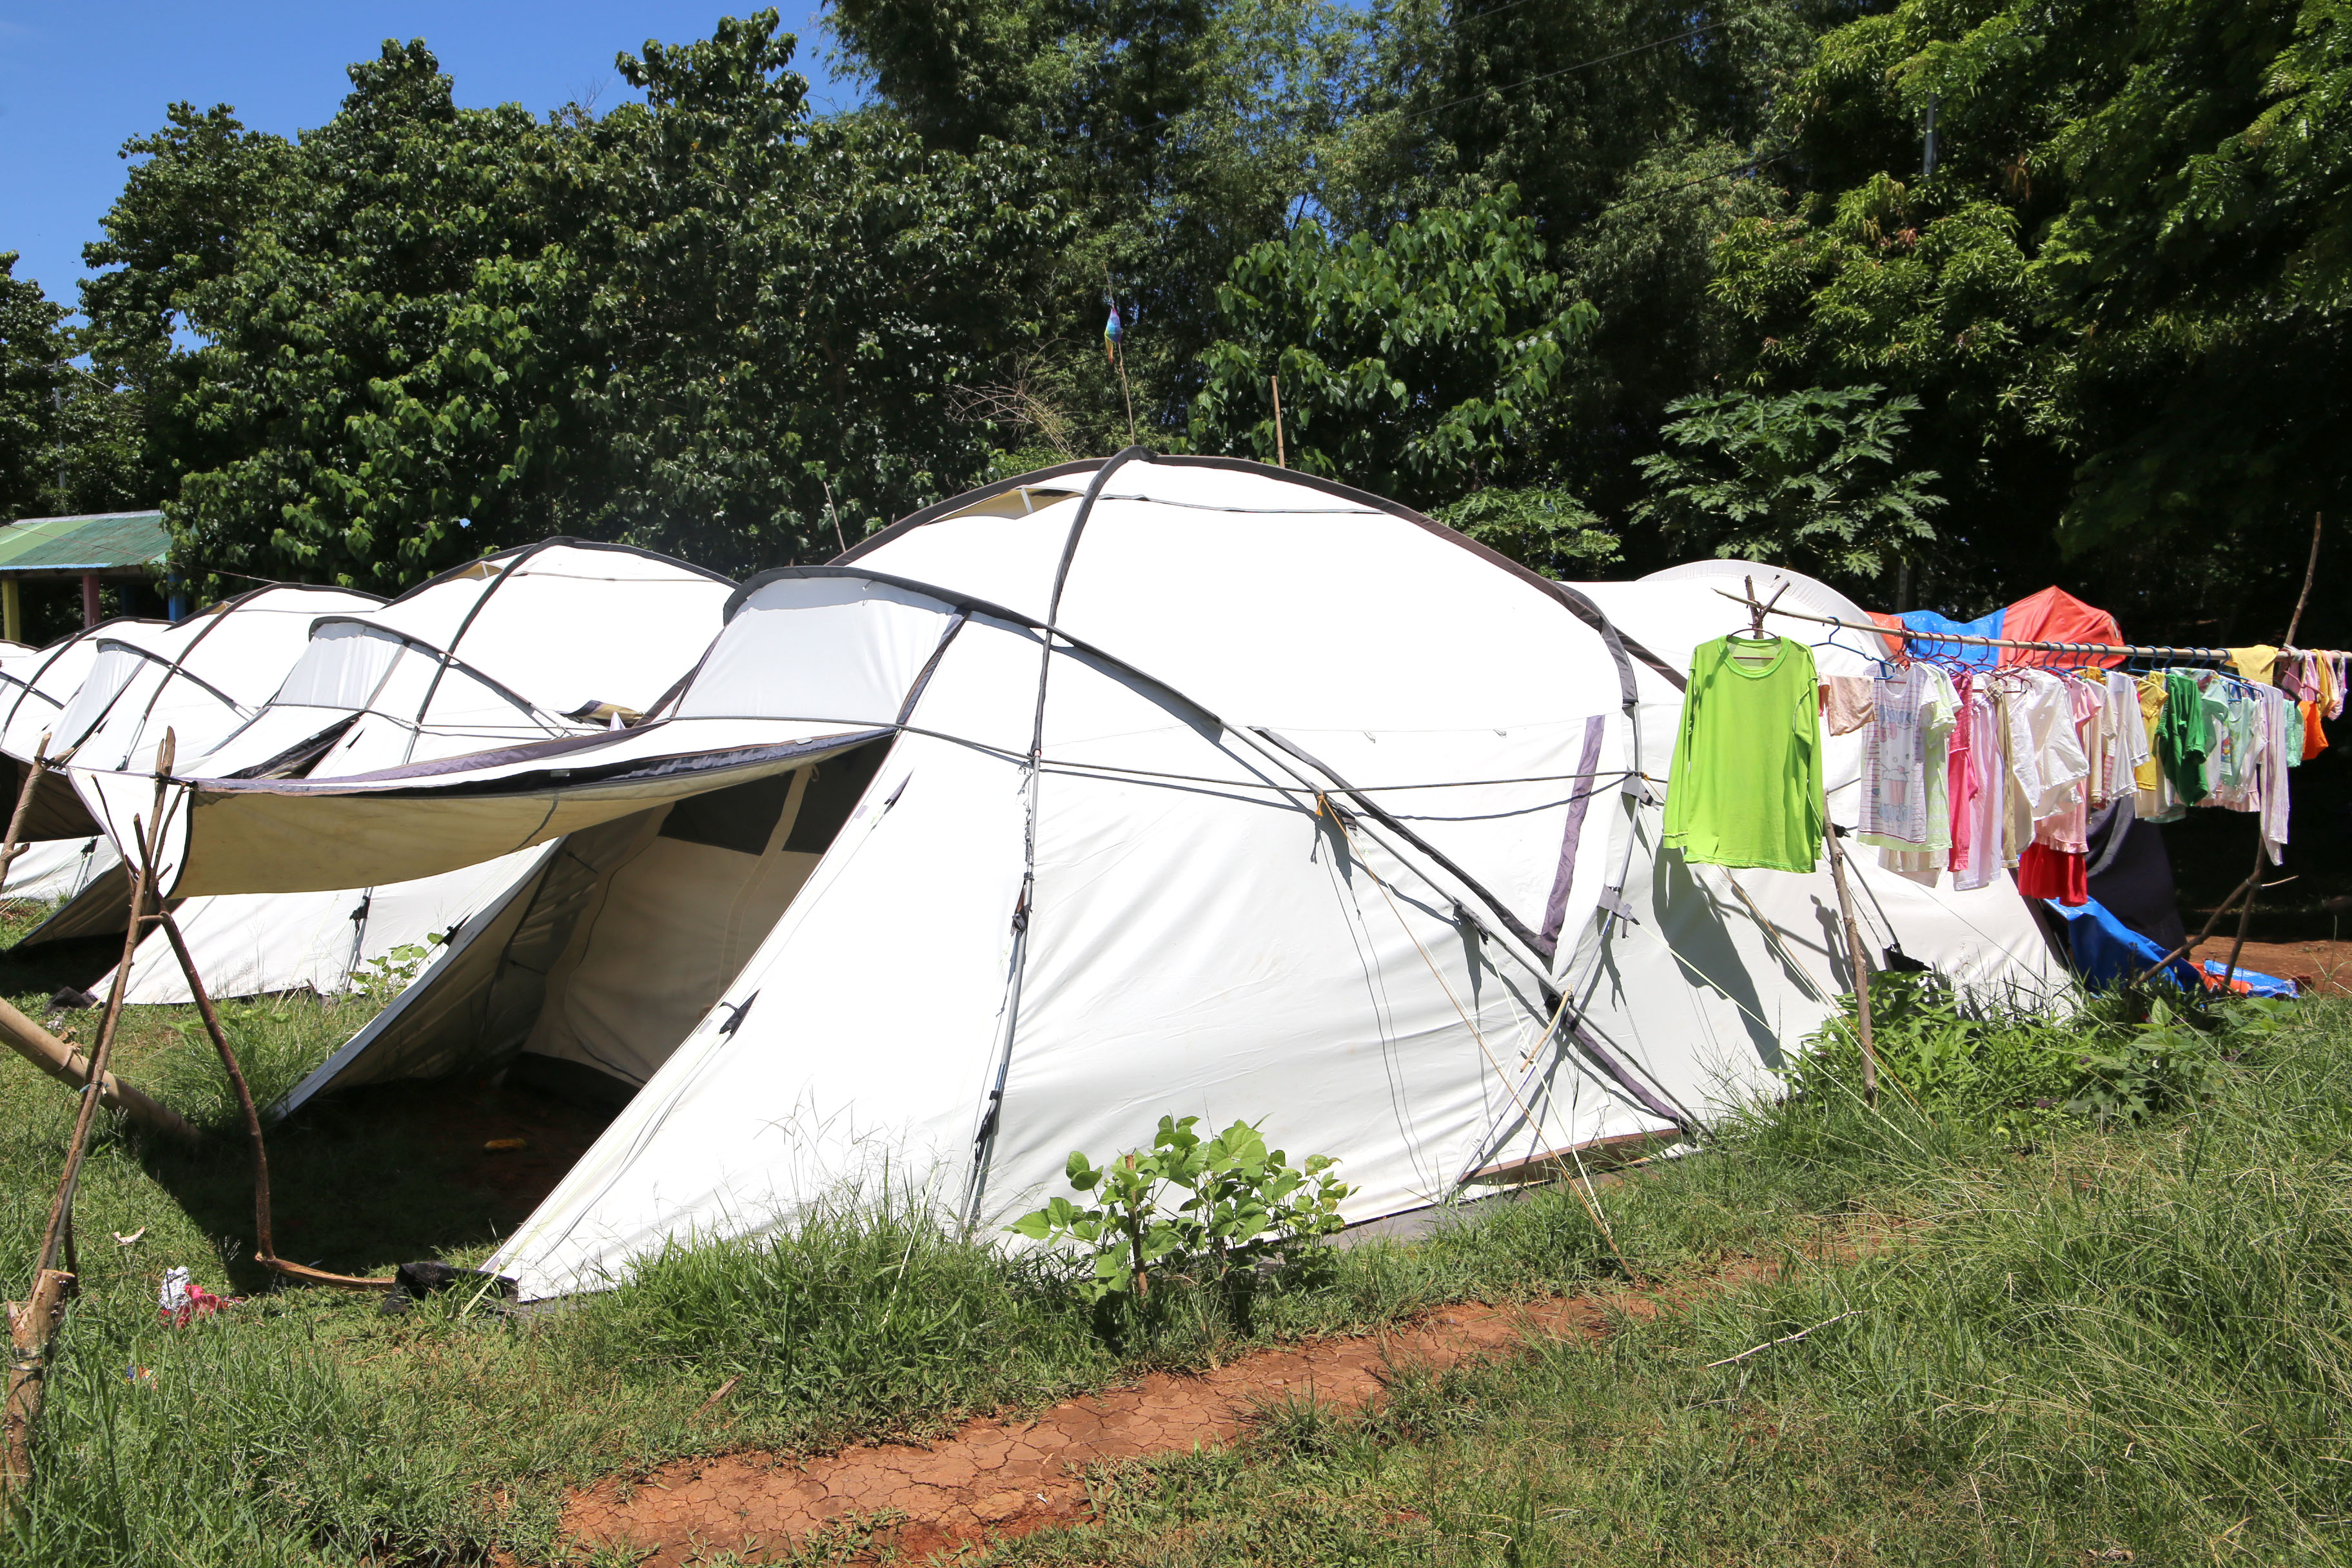 Jenny's Tent with clothesline